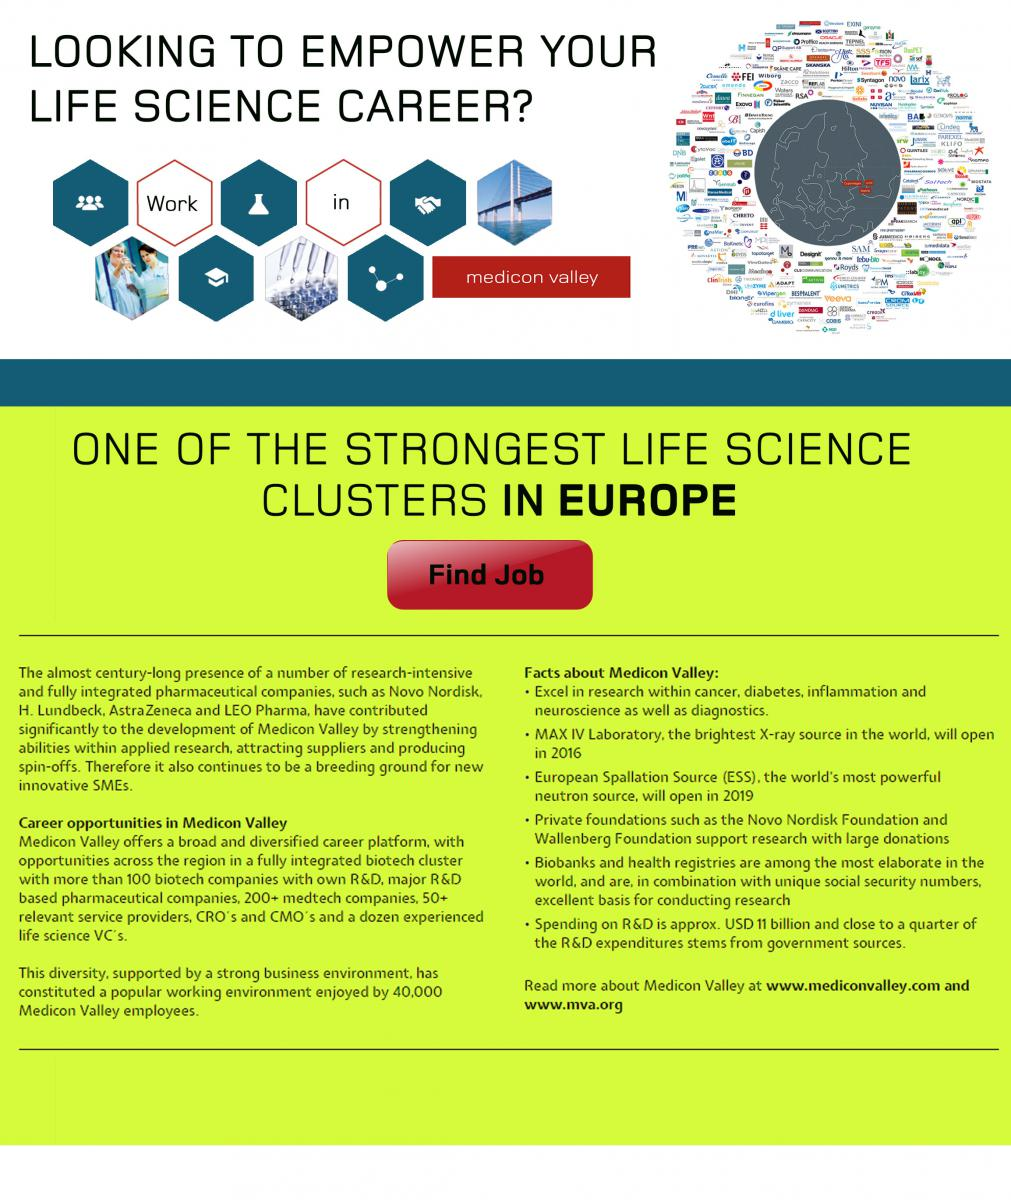 Life Science jobs in Medicon Valley